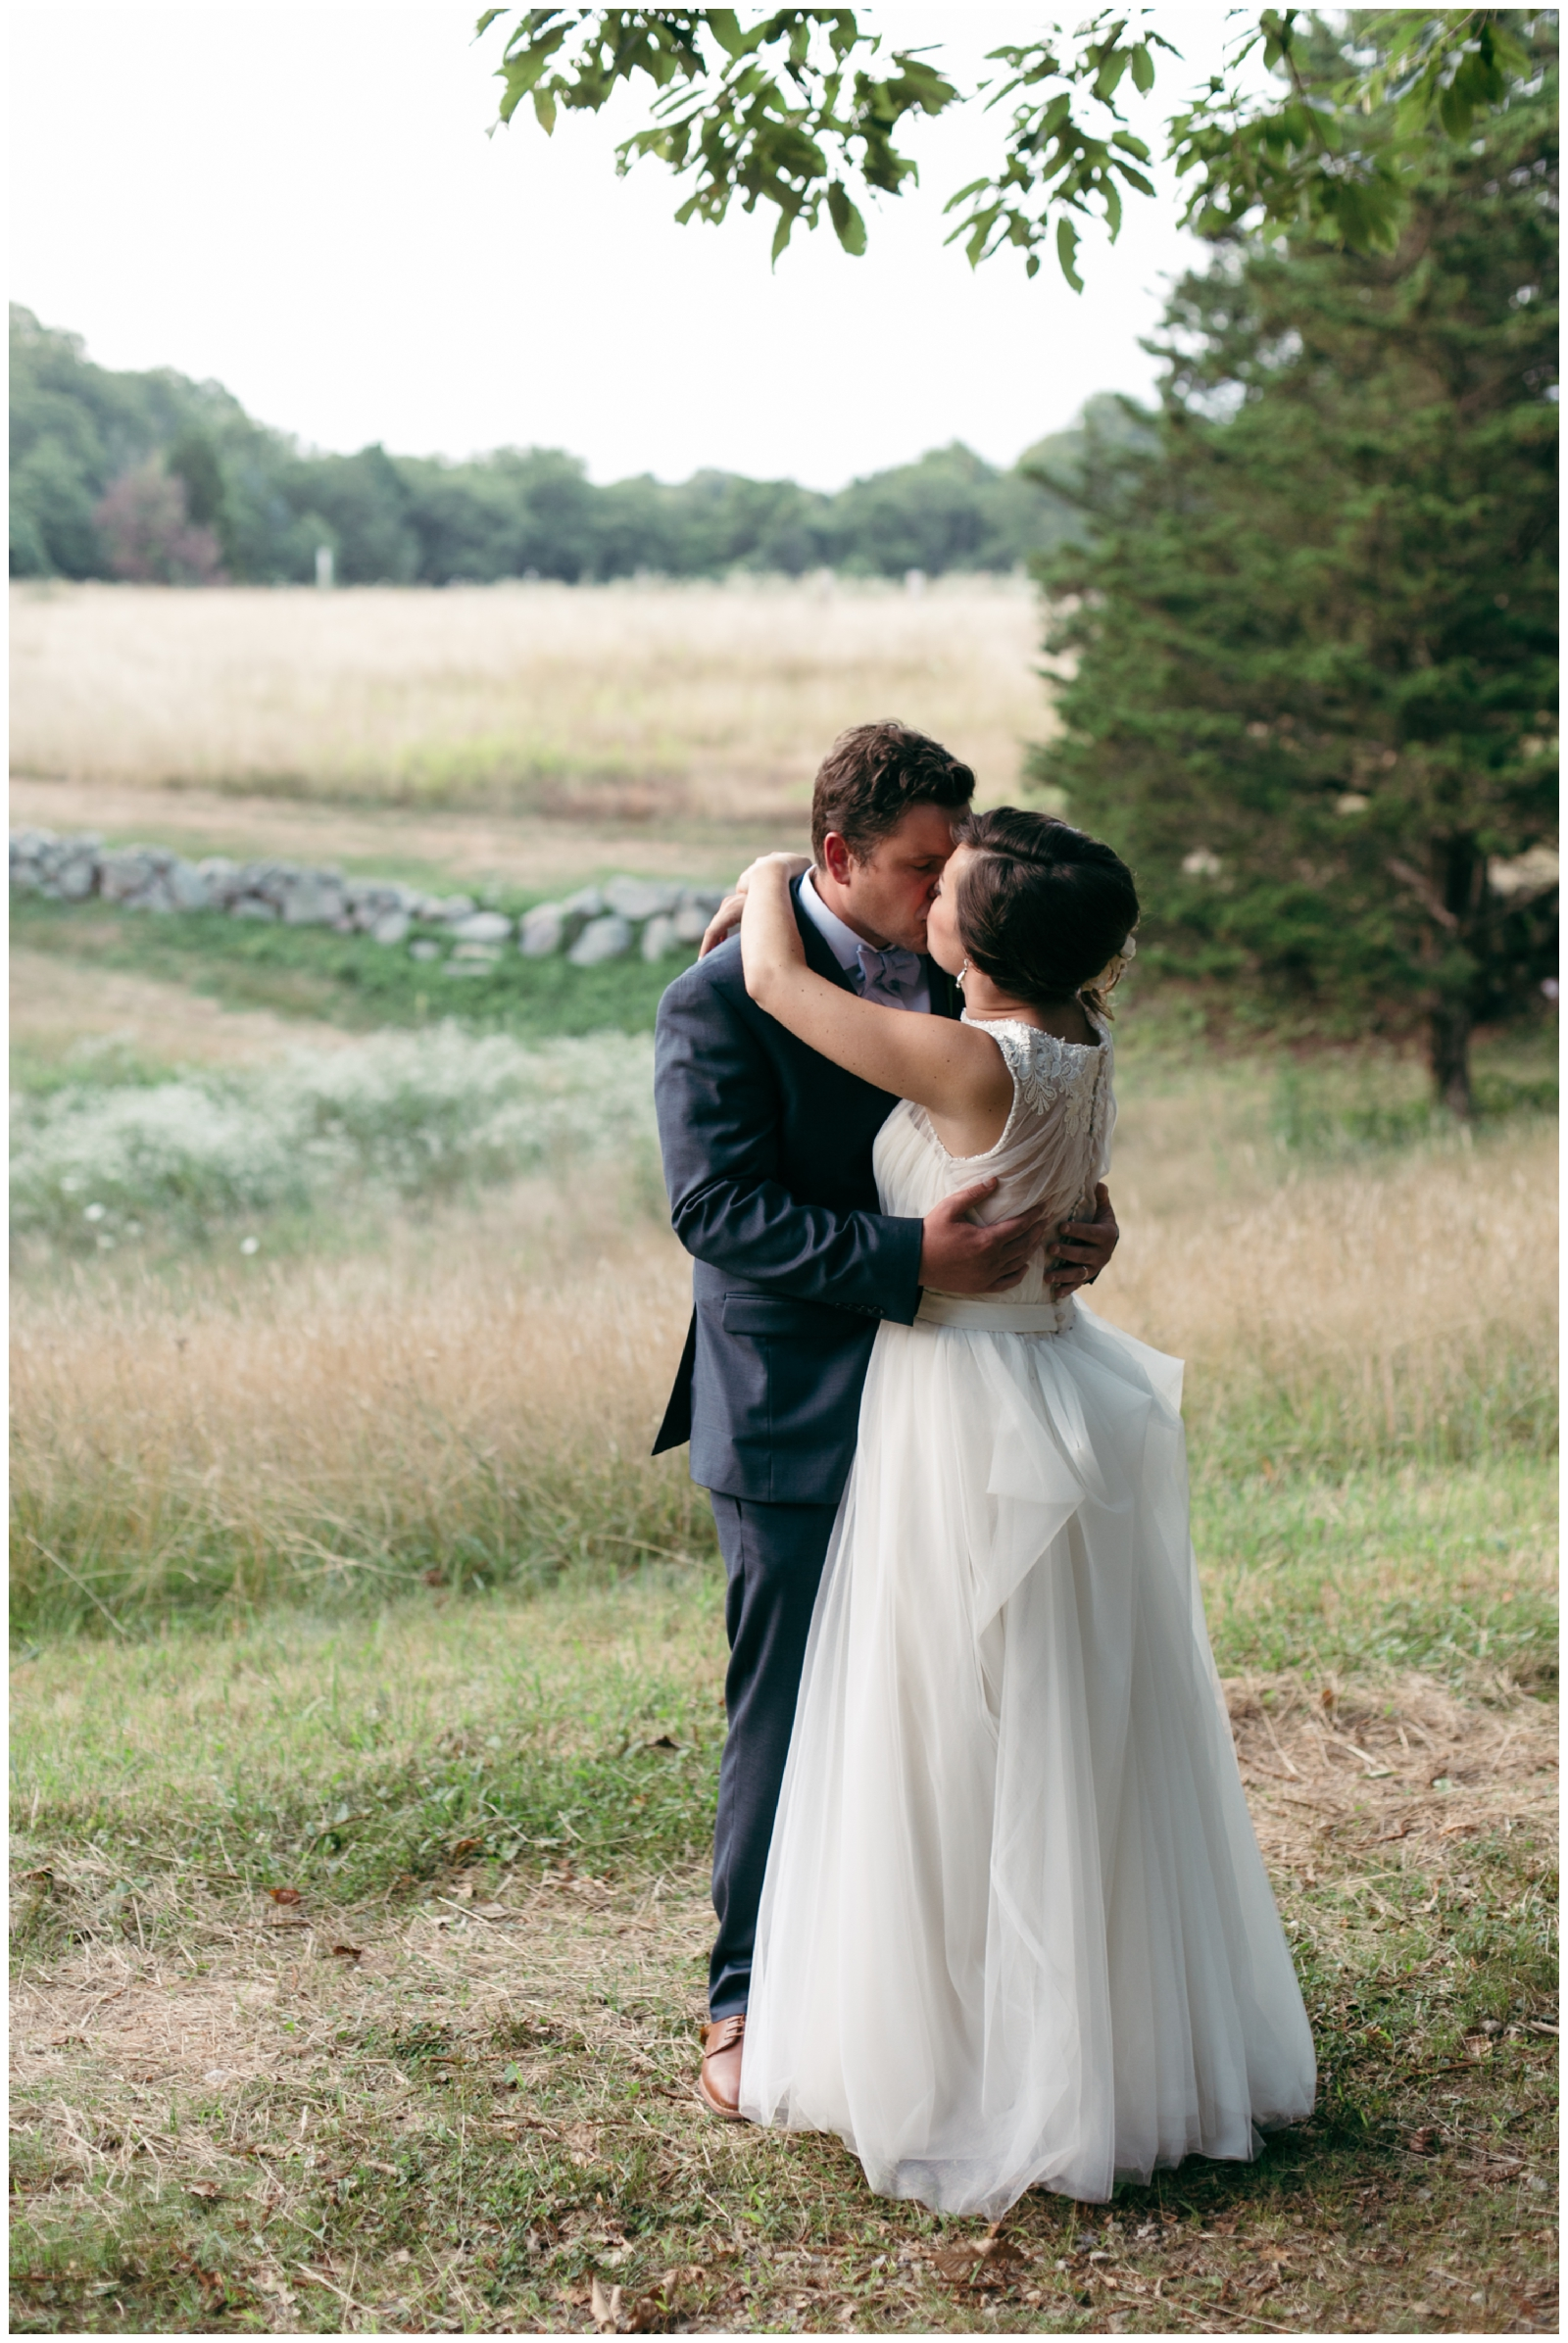 Bourne-Farm-Wedding-Cape-Cod-wedding-photographer-Bailey-Q-Photo-059.jpg